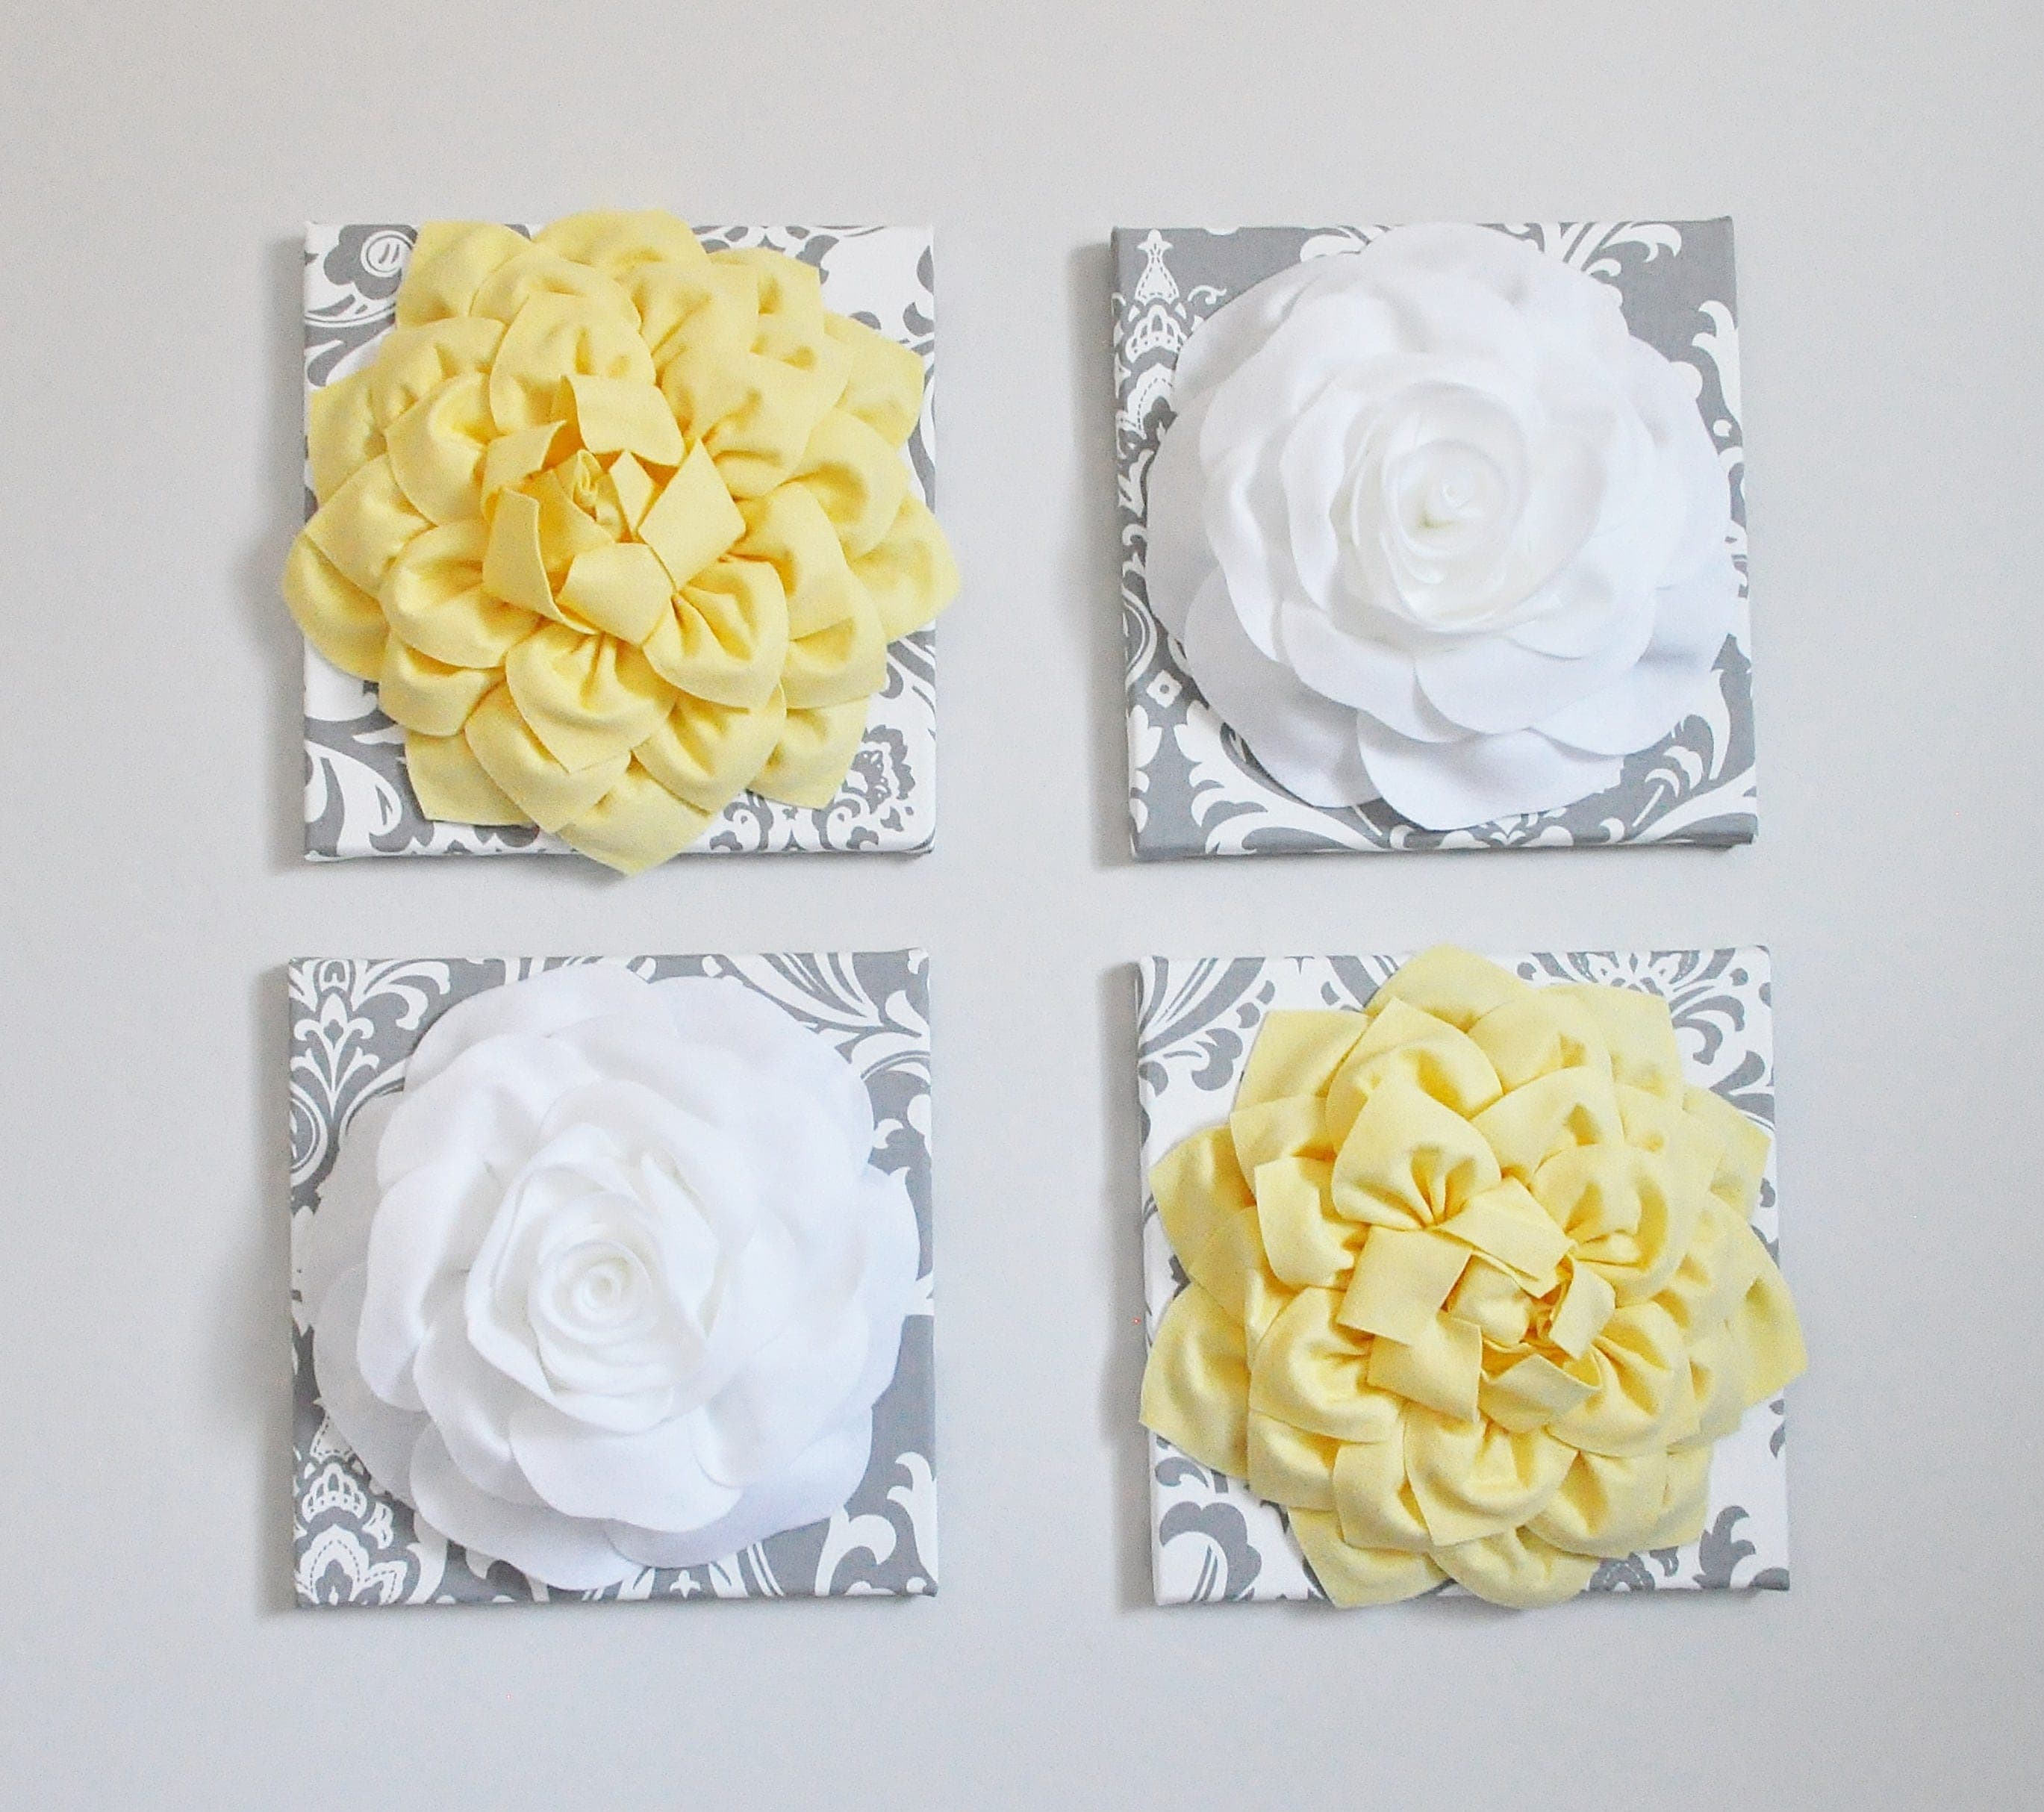 Old Fashioned Wall Flower Decorations Ideas - The Wall Art ...